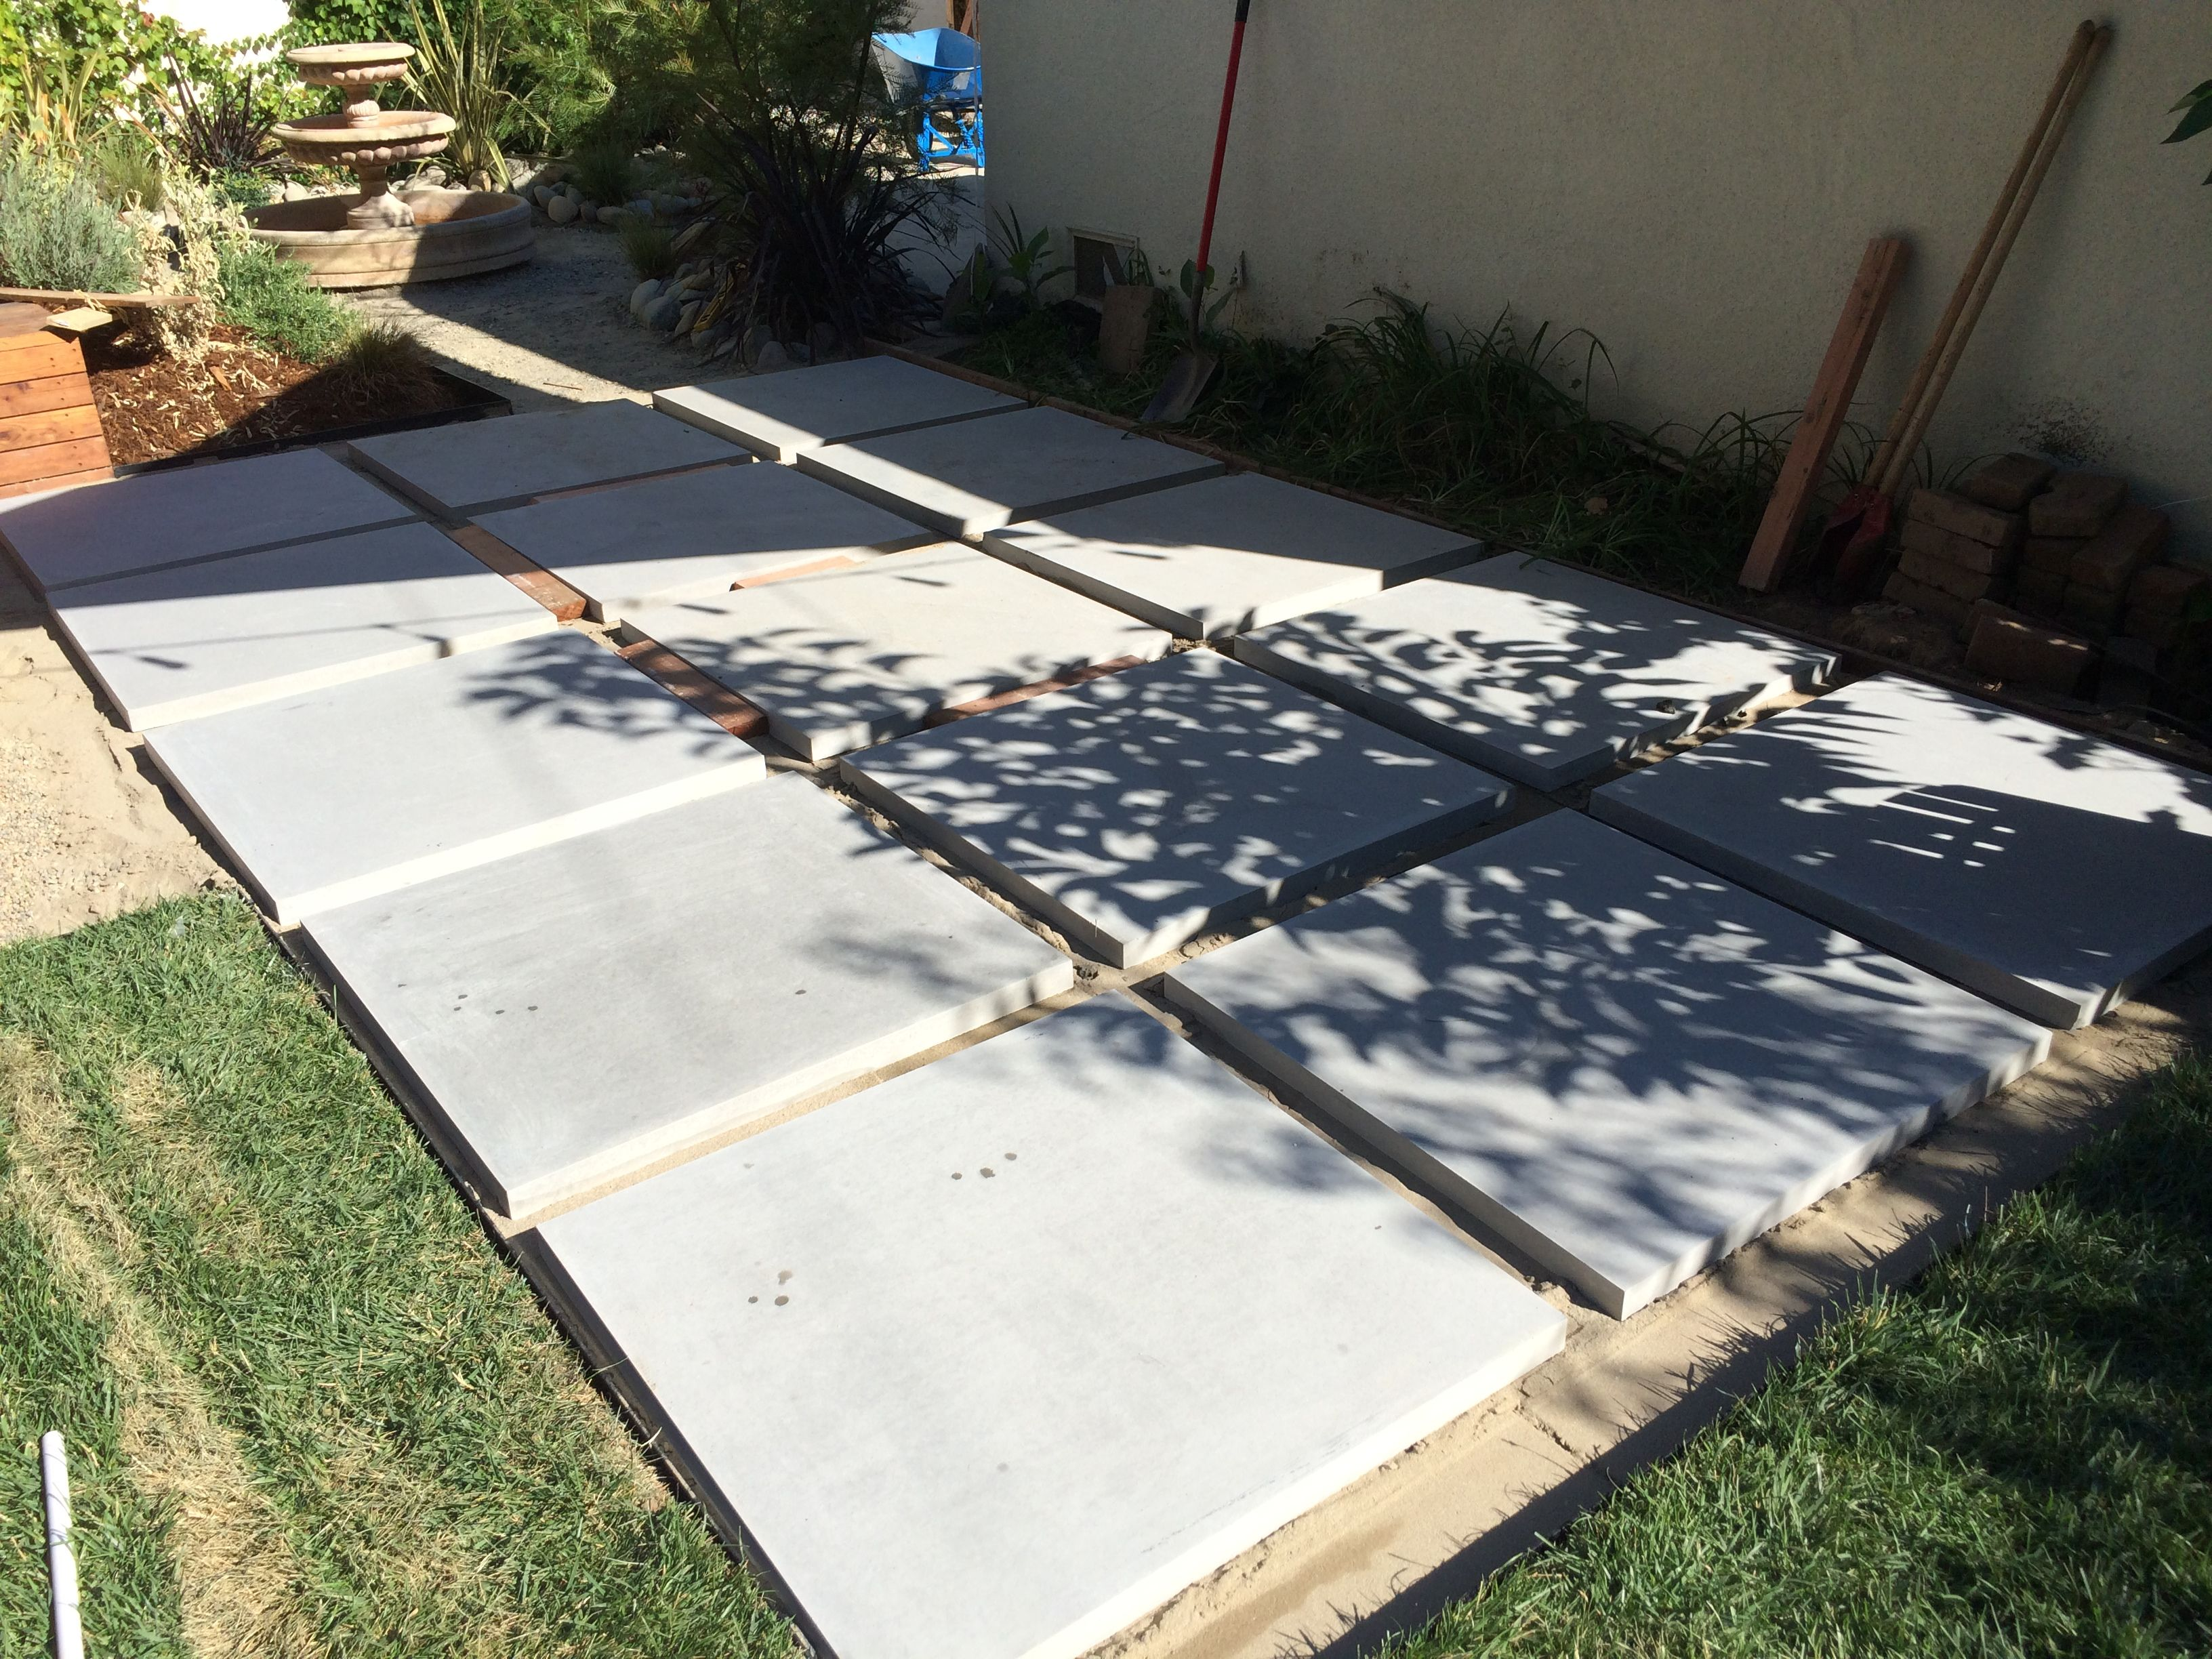 These 36 Square Slab Pavers Are Perfect For A Diy Patio That S Modern Yet Timeless I Used A 2x4 To Creat Even Gaps Patio Pavers Design Paver Patio Diy Patio